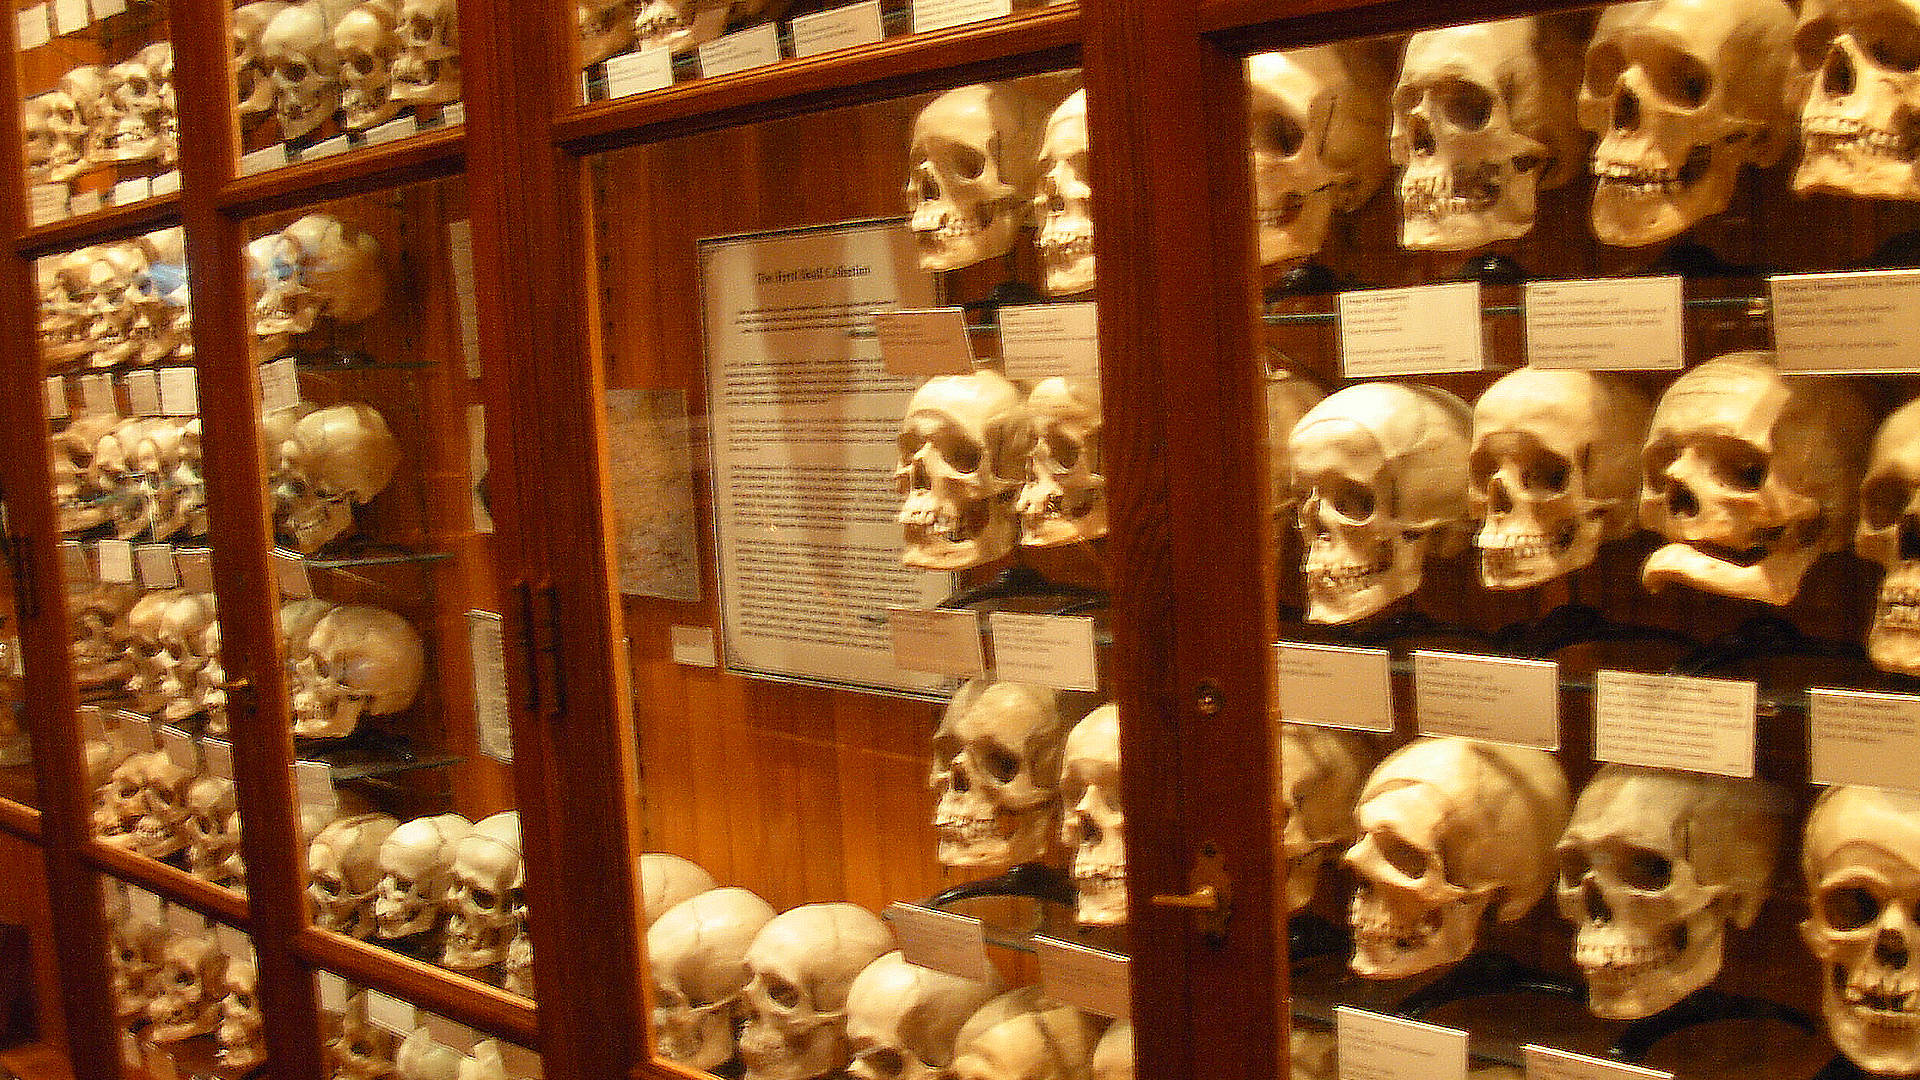 You are currently viewing Bone Rooms: How Elite Schools and Museums Amassed Black and Native Human Remains Without Consent